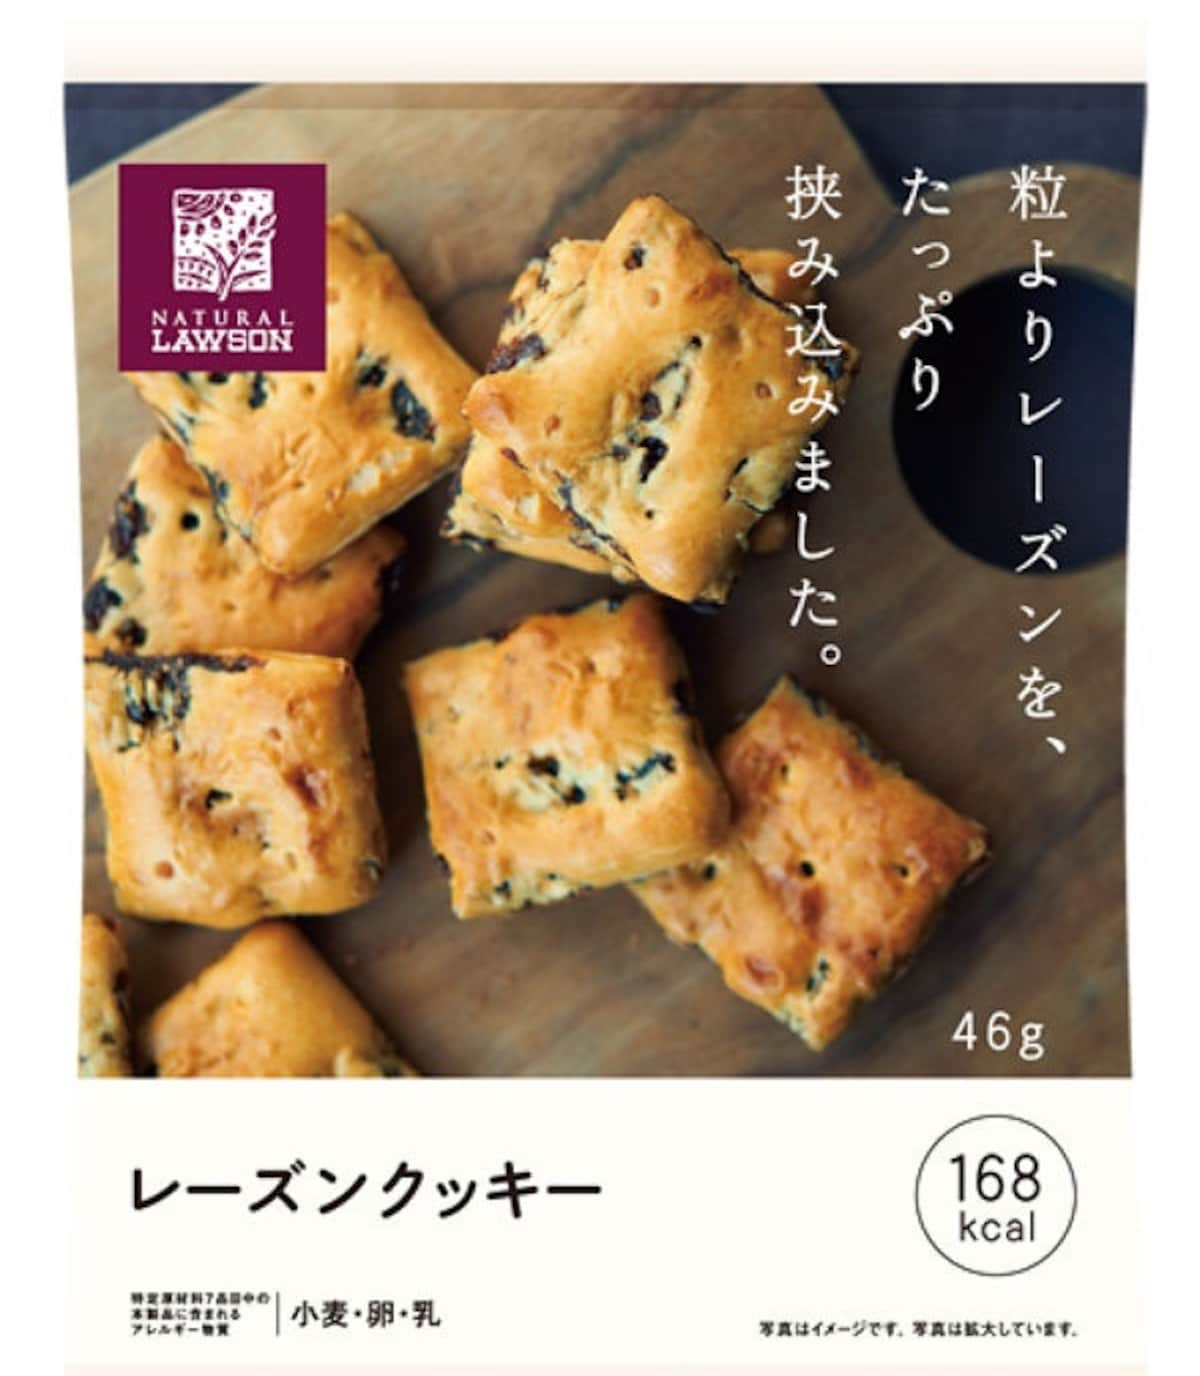 4. Raisin Cookies